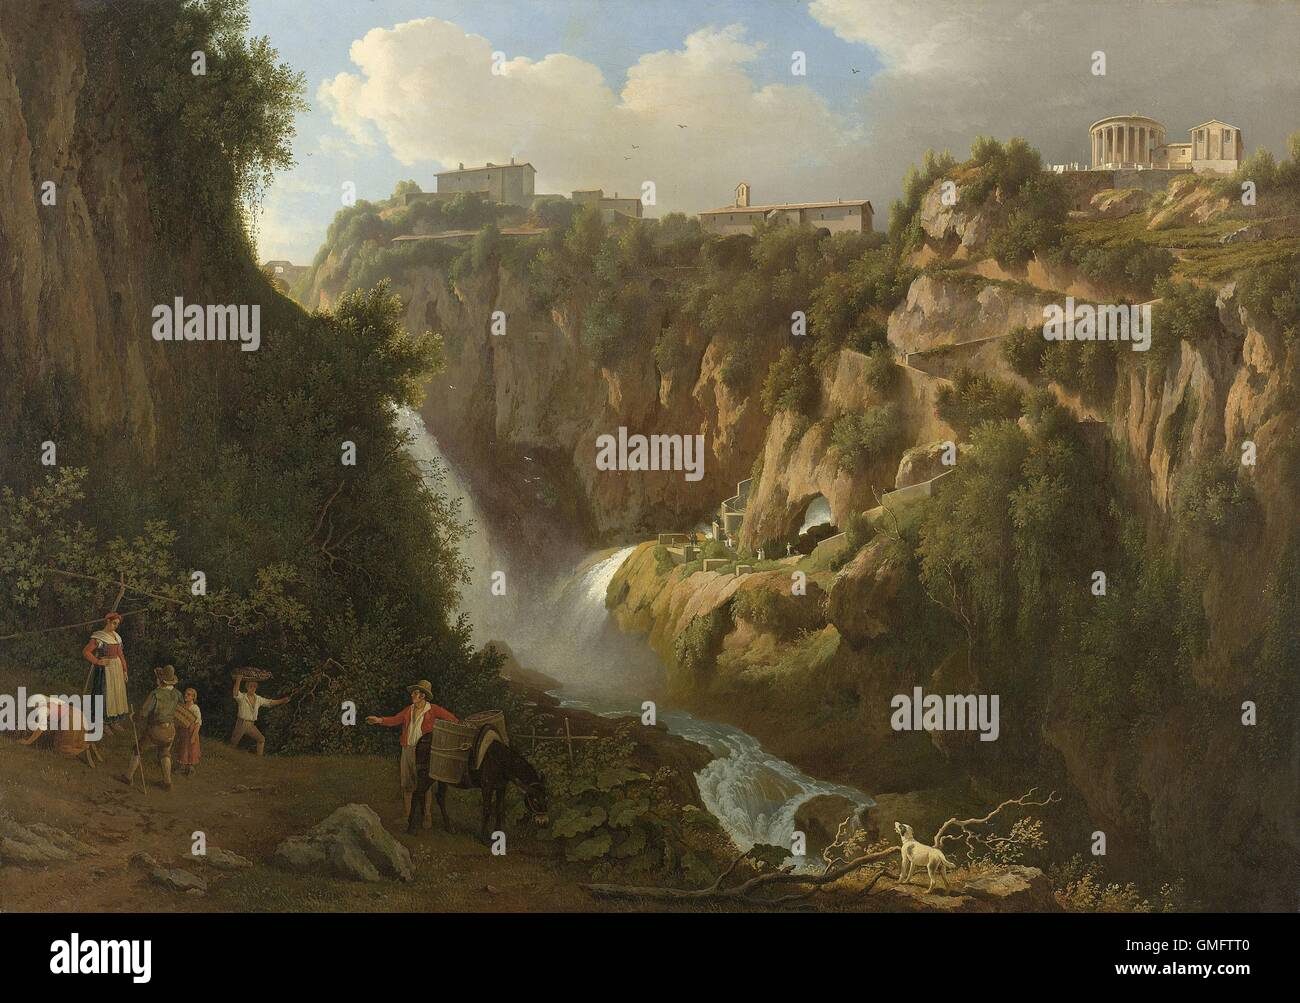 The Waterfall at Tivoli, by Abraham Teerlink, 1824, Dutch painting, oil on canvas. Town of Tivoli line the top of - Stock Image